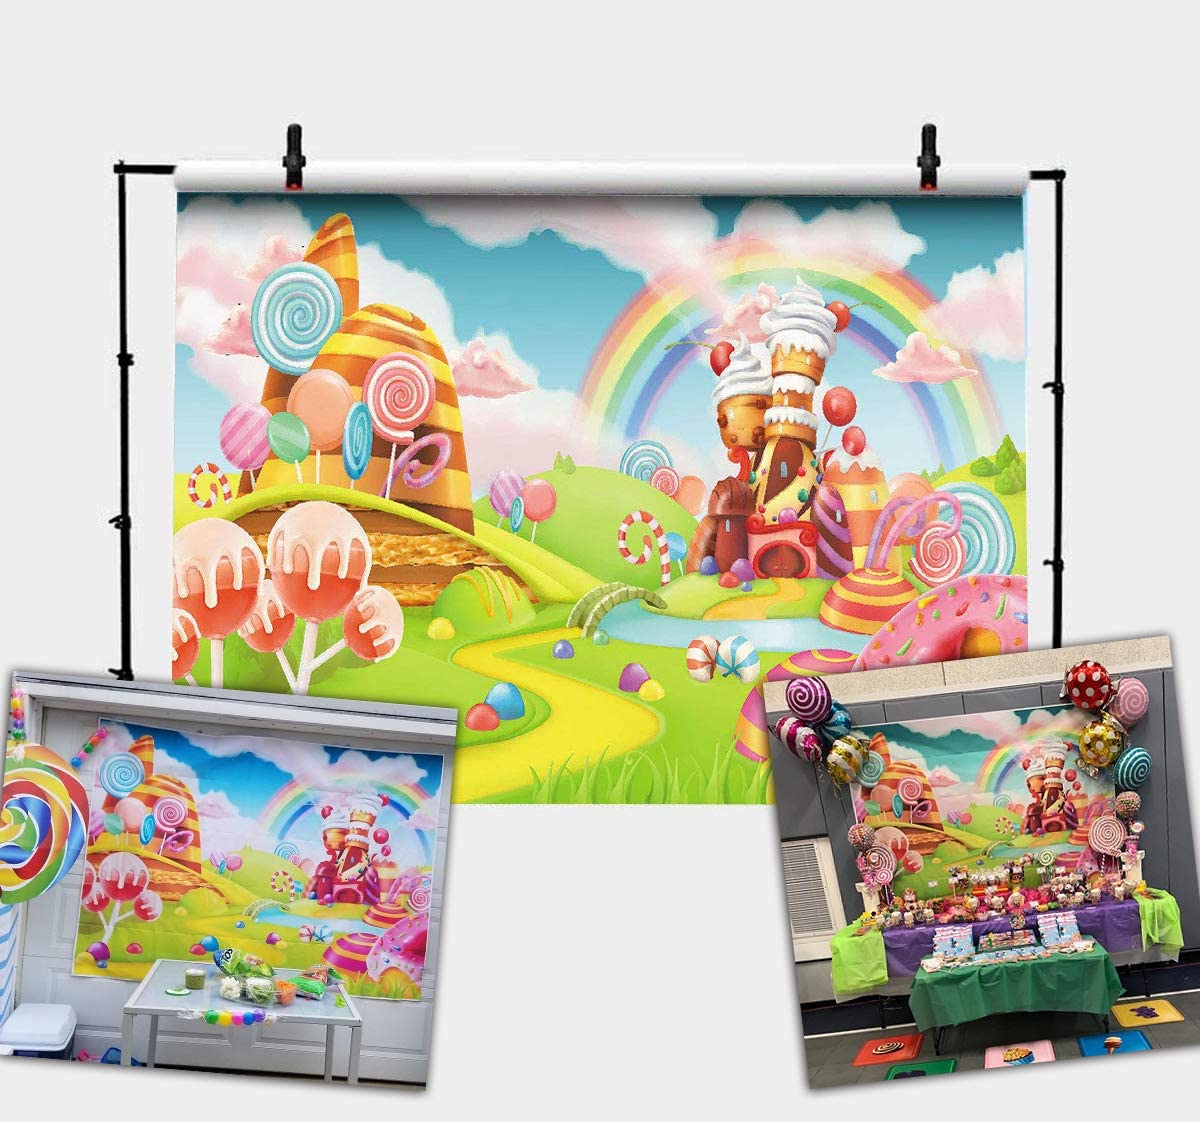 Sweet Cartoon Candy Paradise Backdrop 7x5ft Vinyl Pastel Creamy Cabin Lollipops Donut Arch Door Chocolate Path Biscuit Sun Blue Sky Photography Background Baby Birthday Party Banner Cake Smash